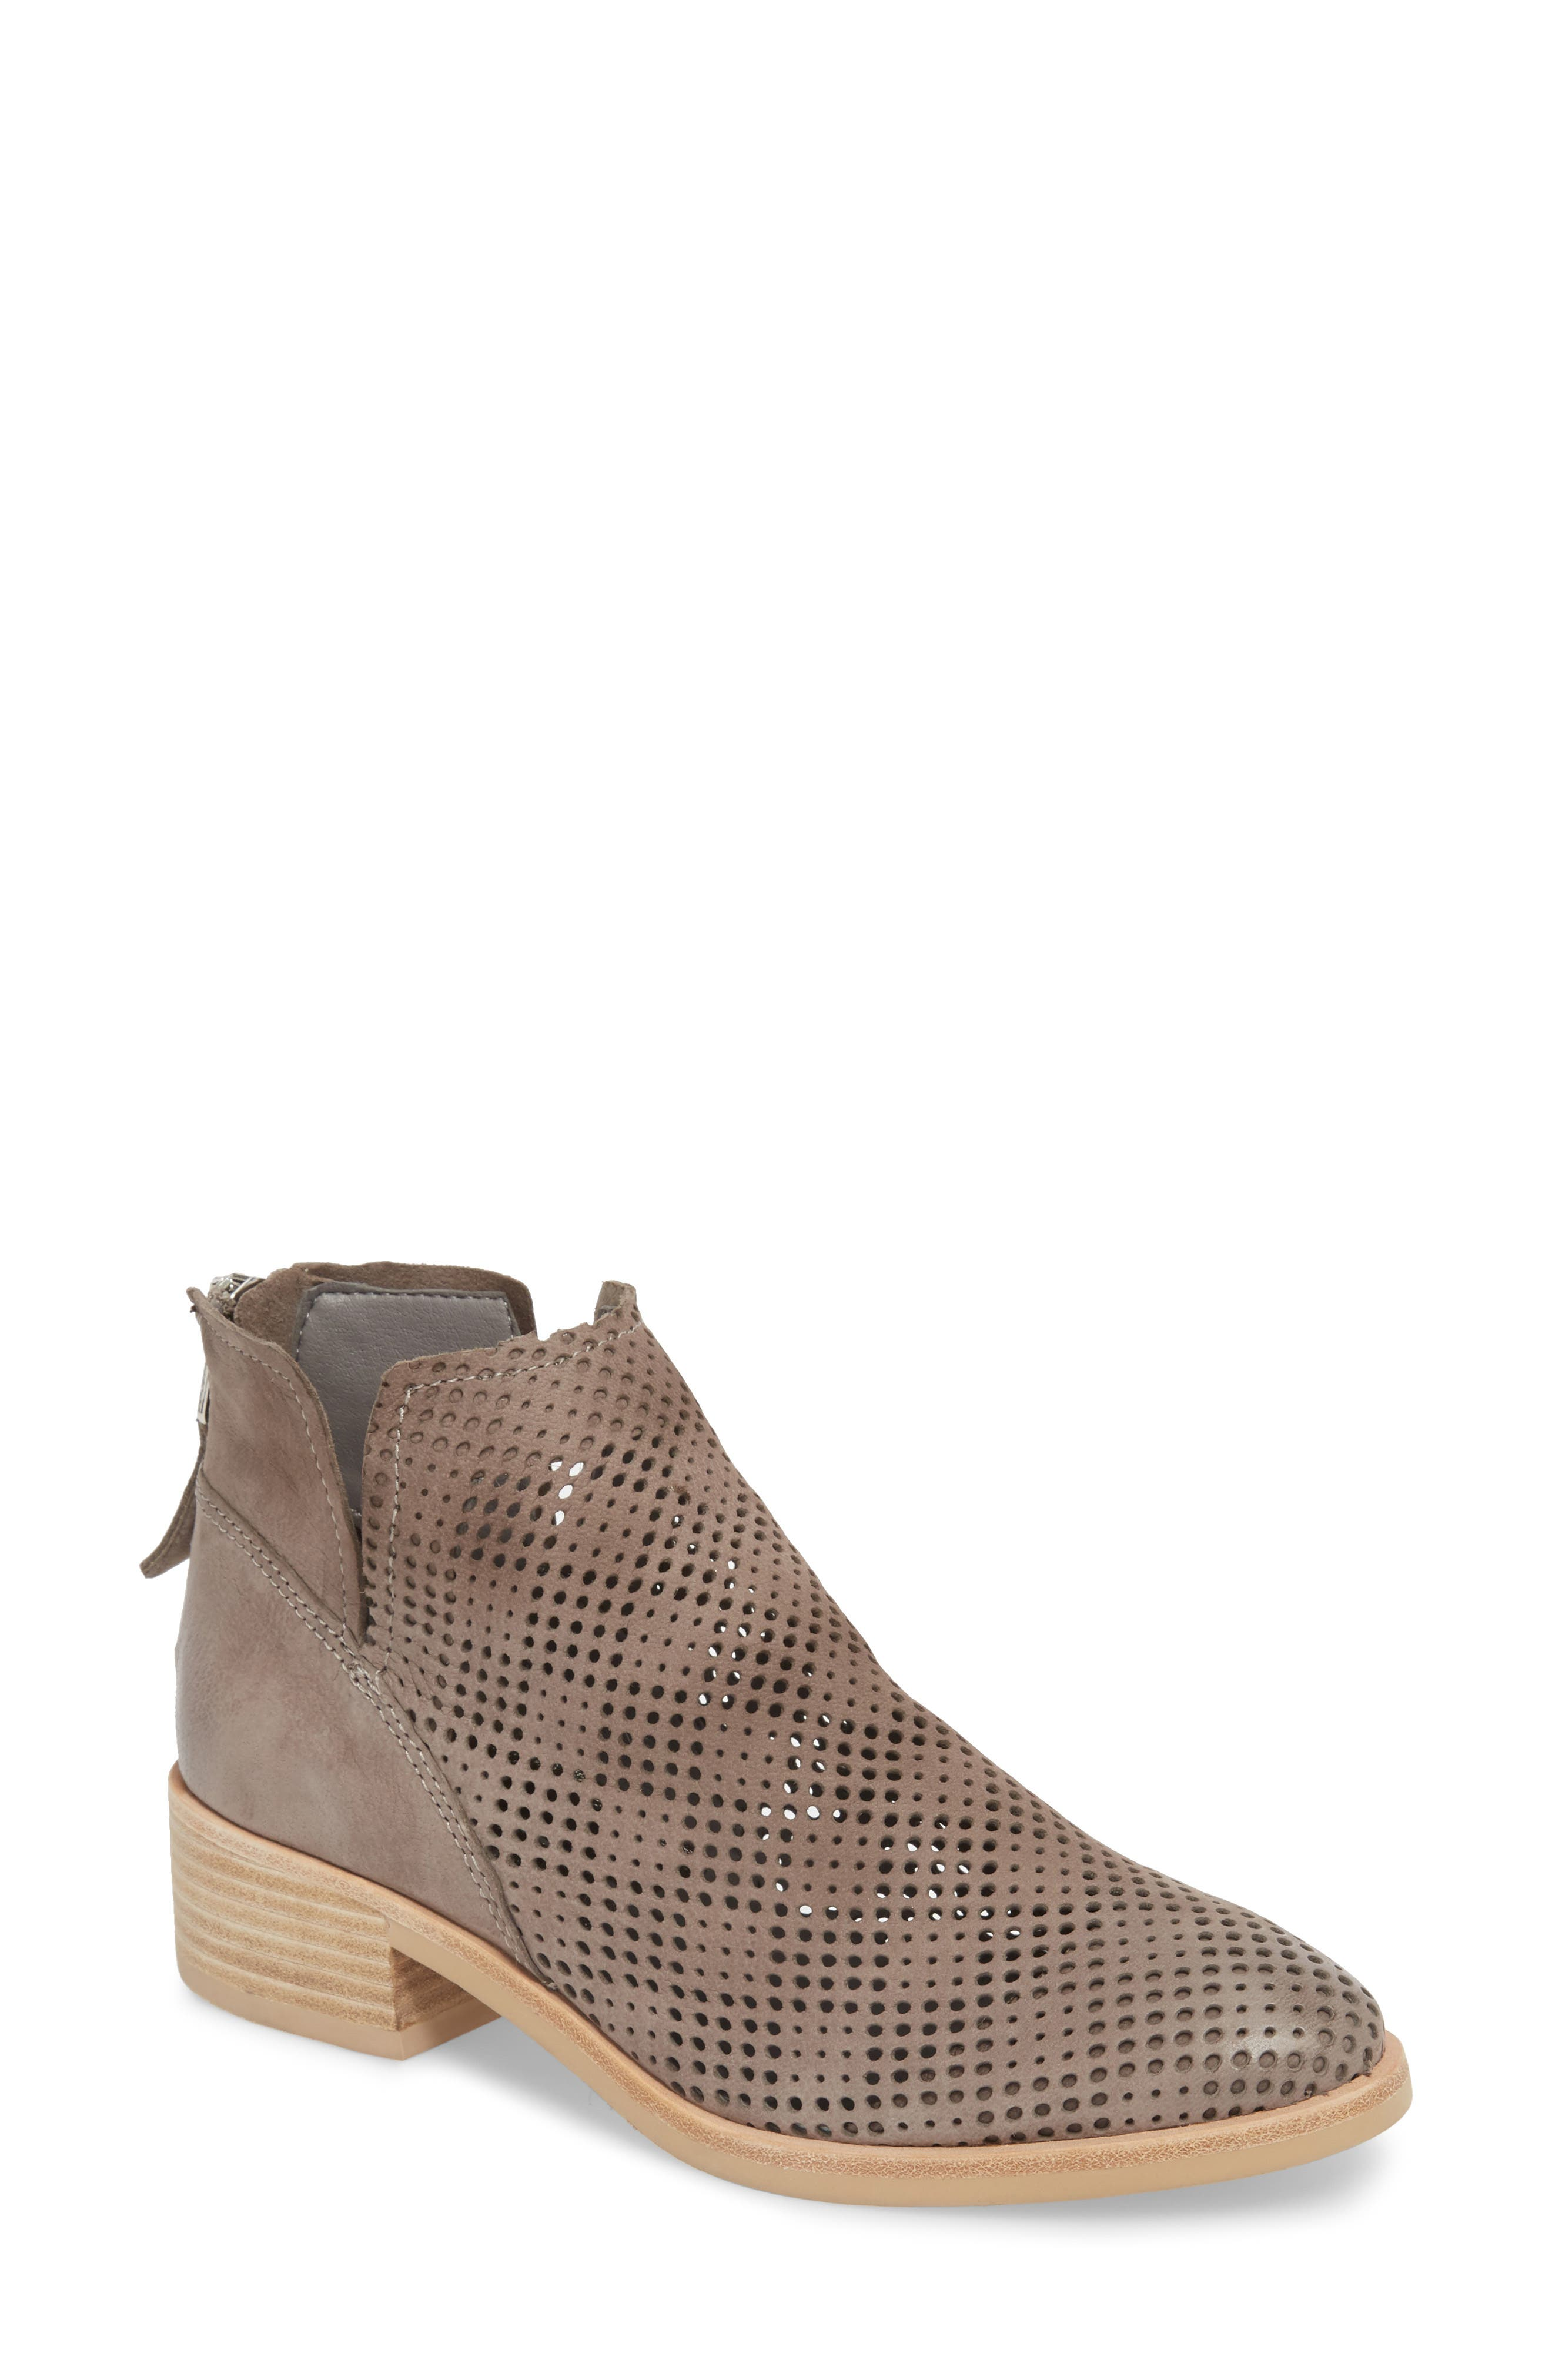 Dolce Vita Tommi Perforated Bootie- Grey